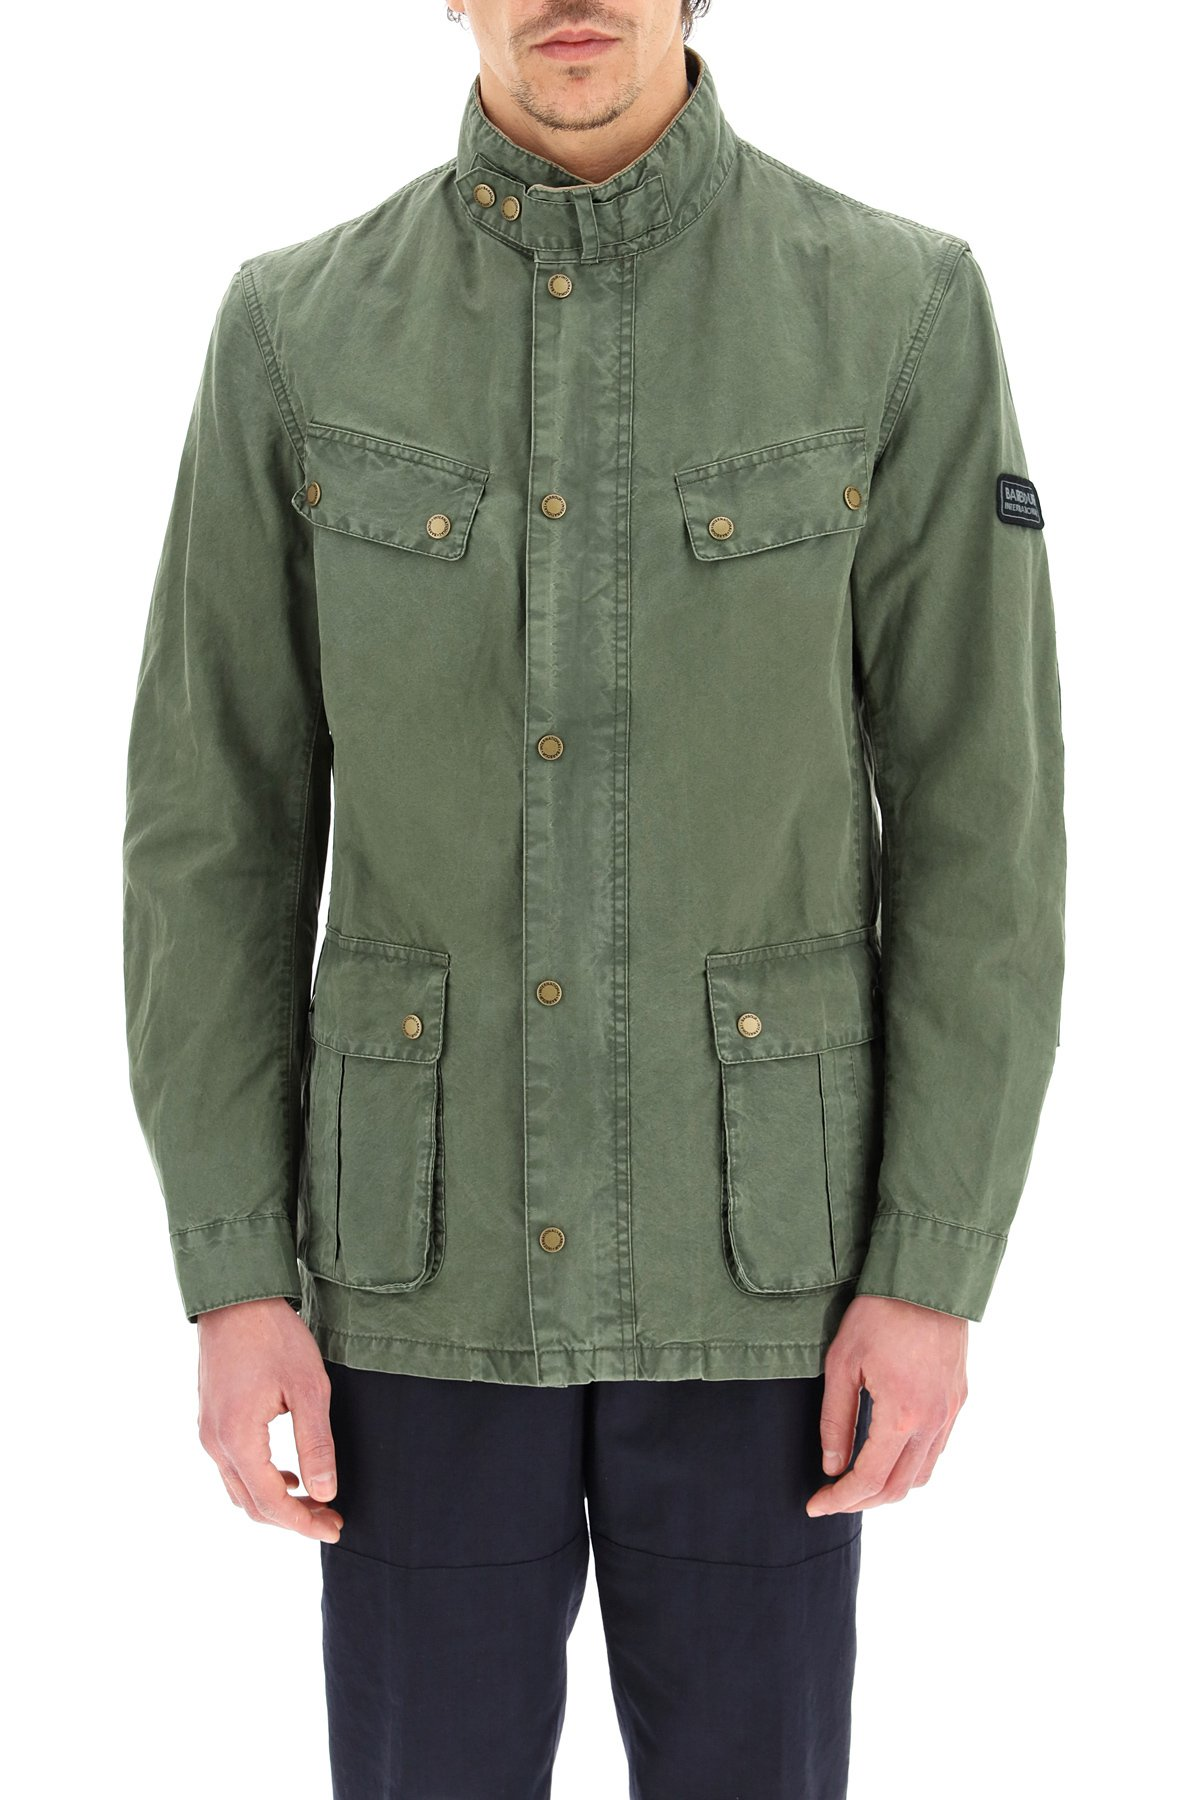 Barbour international giacca duke in cotone